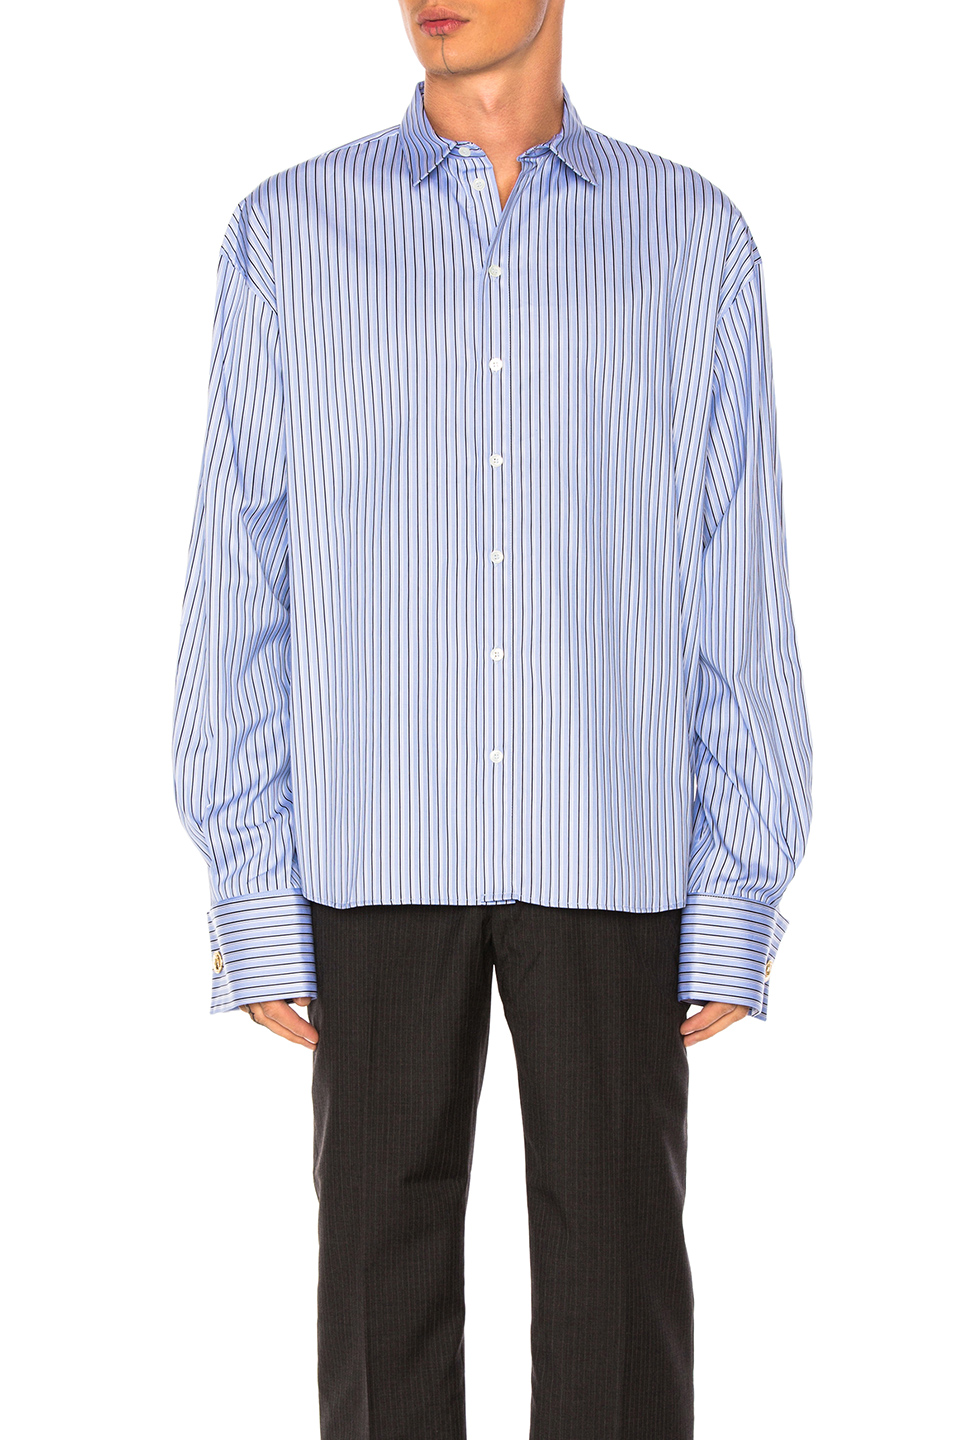 Y Project Shirt in Blue,Stripes